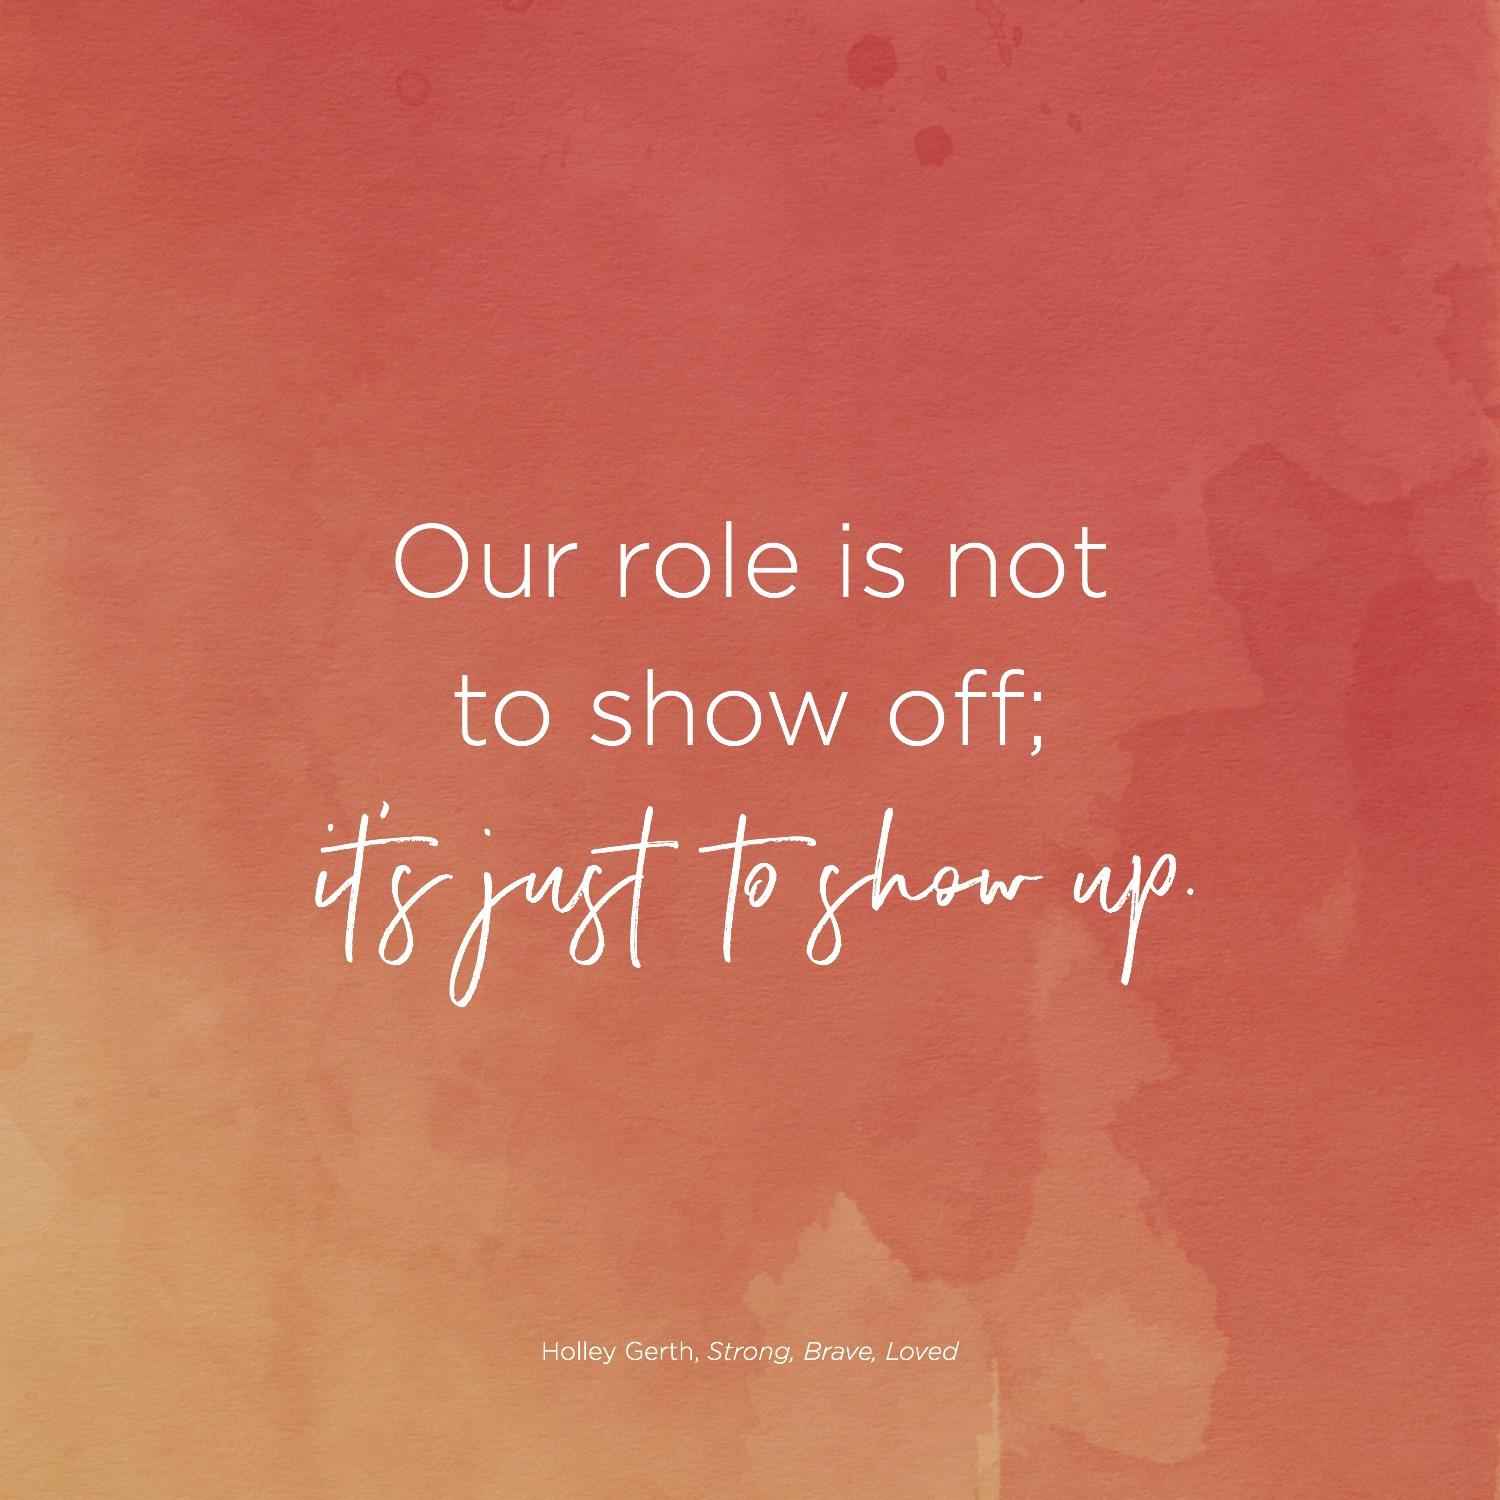 Our role is not to show off; it's just to show up.